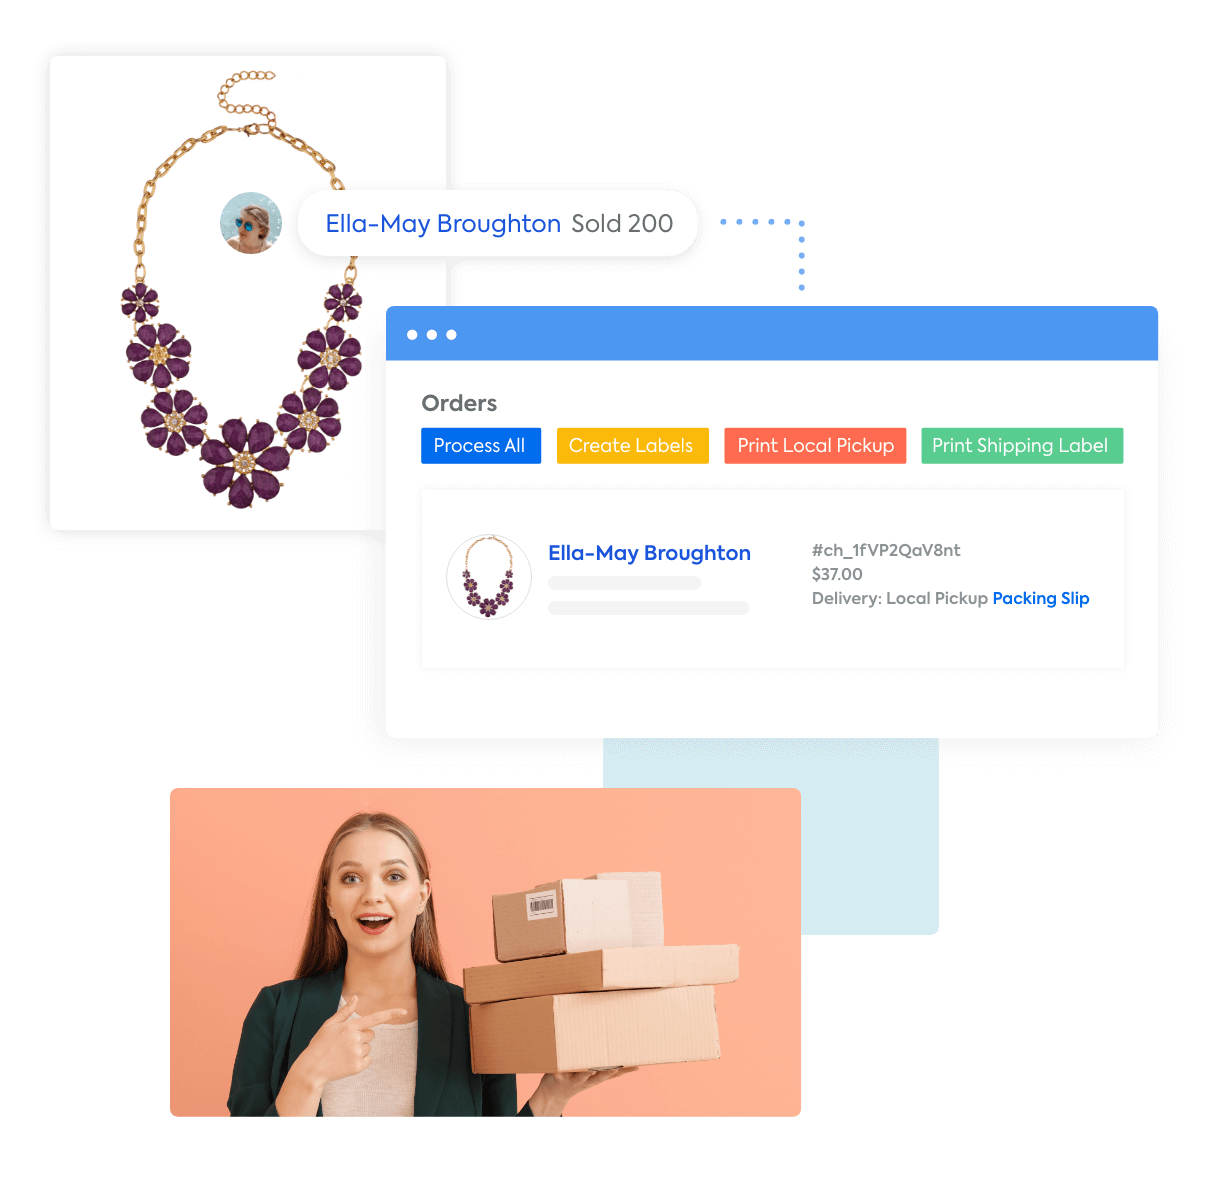 A necklace being purchased by comment, the CommentSold shipping and fulfillment screen, and a happy woman receiving her shipment